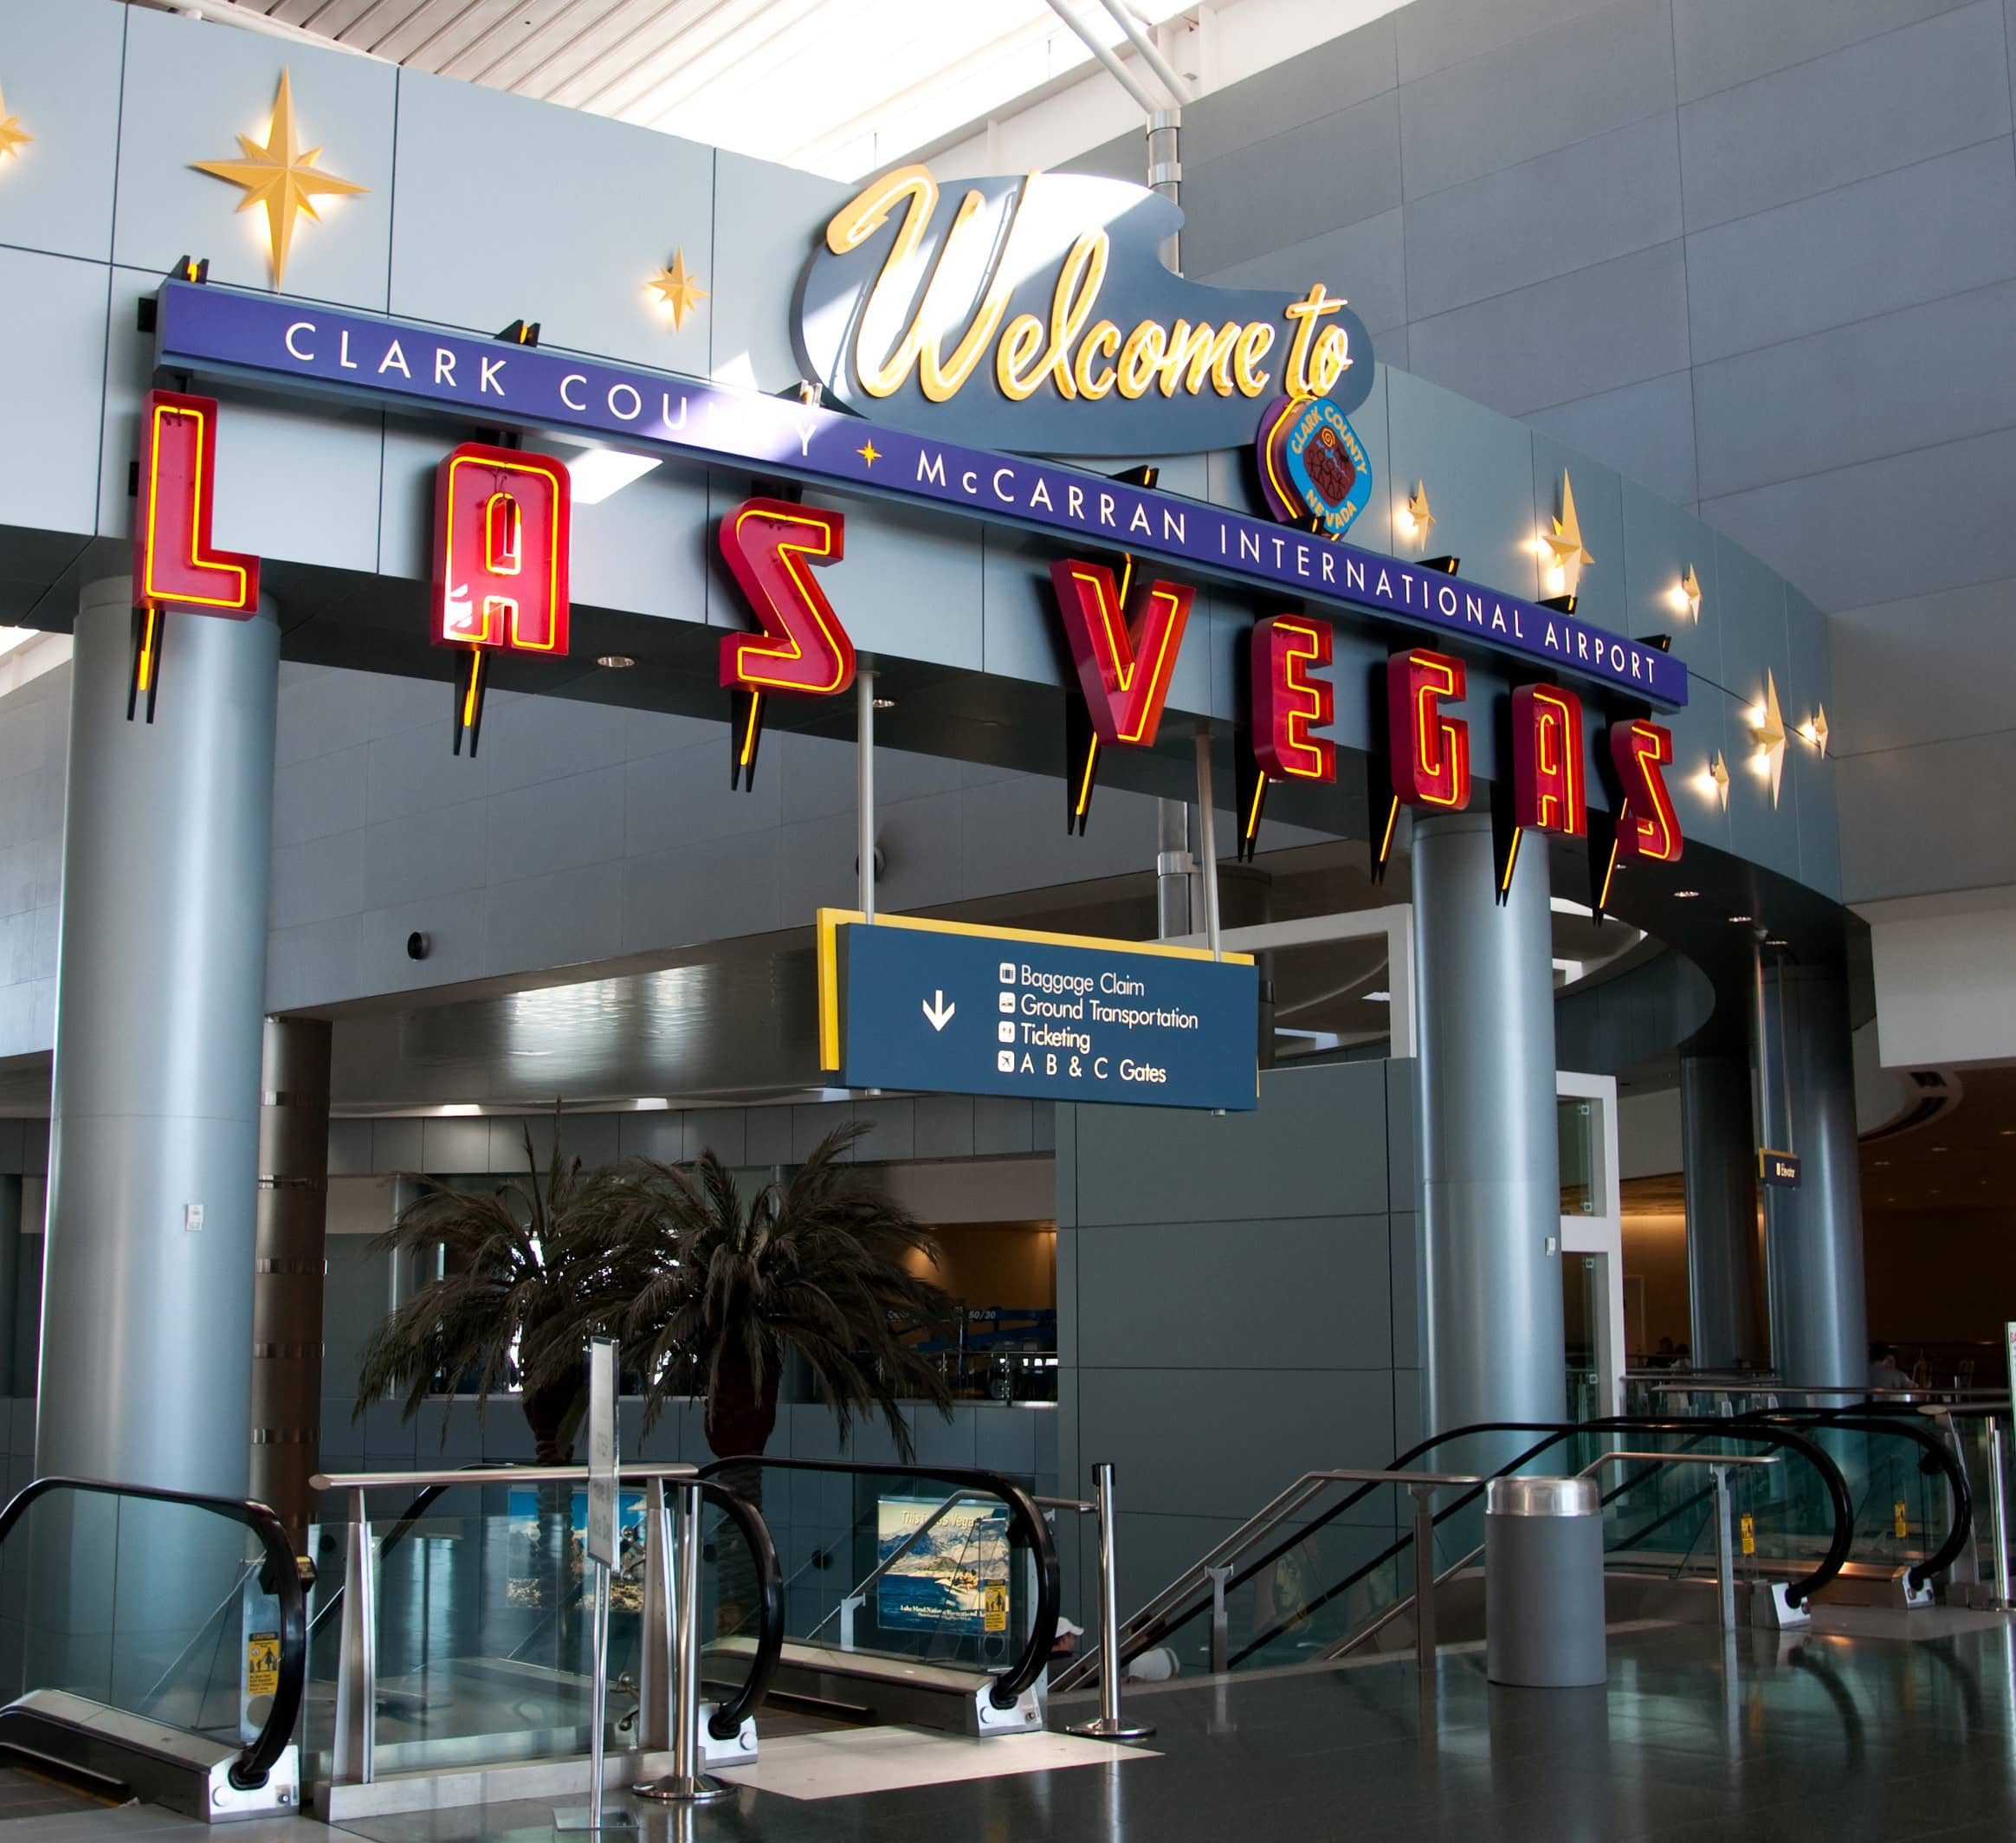 Facial Recognition Technology Tested At Airport In Las Vegas